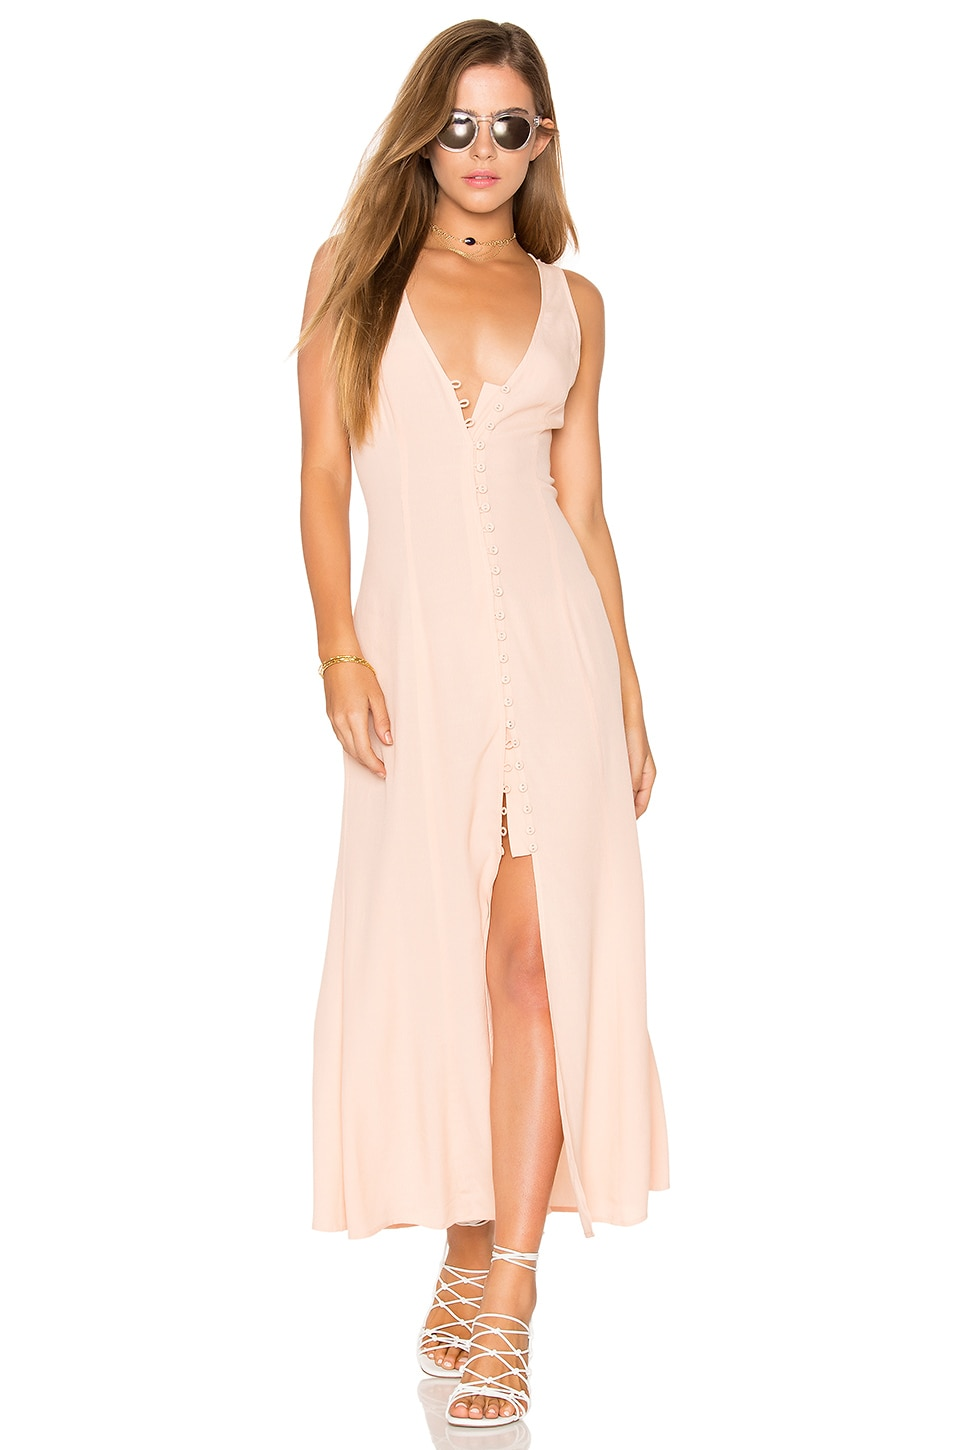 Privacy Please Lomax Dress in Blush